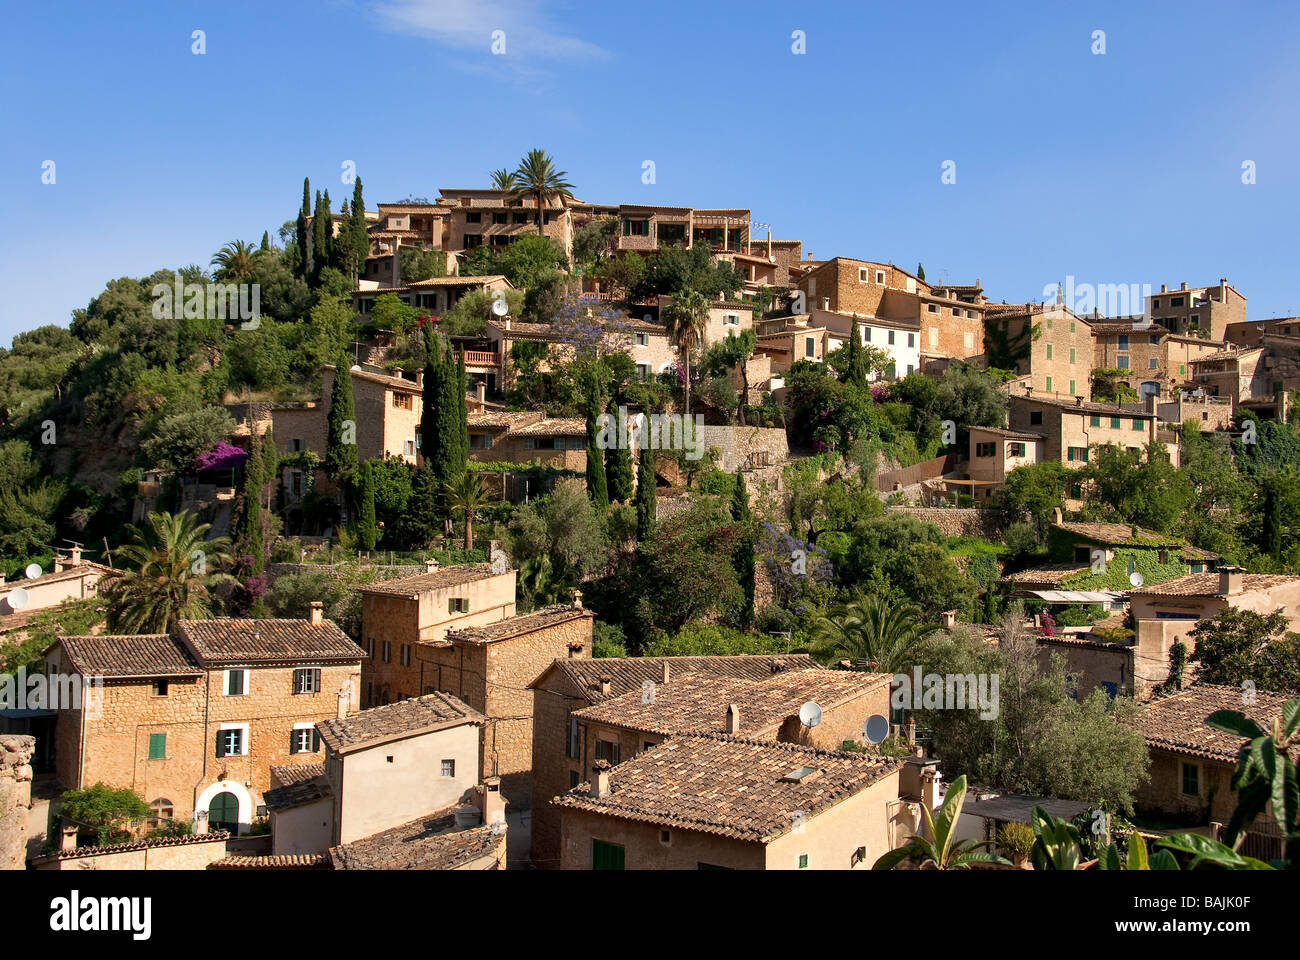 Spain, Balearic Islands, Majorca, Soller, Finca Ca's Sant, family house built in the middle of an orange grove - Stock Image